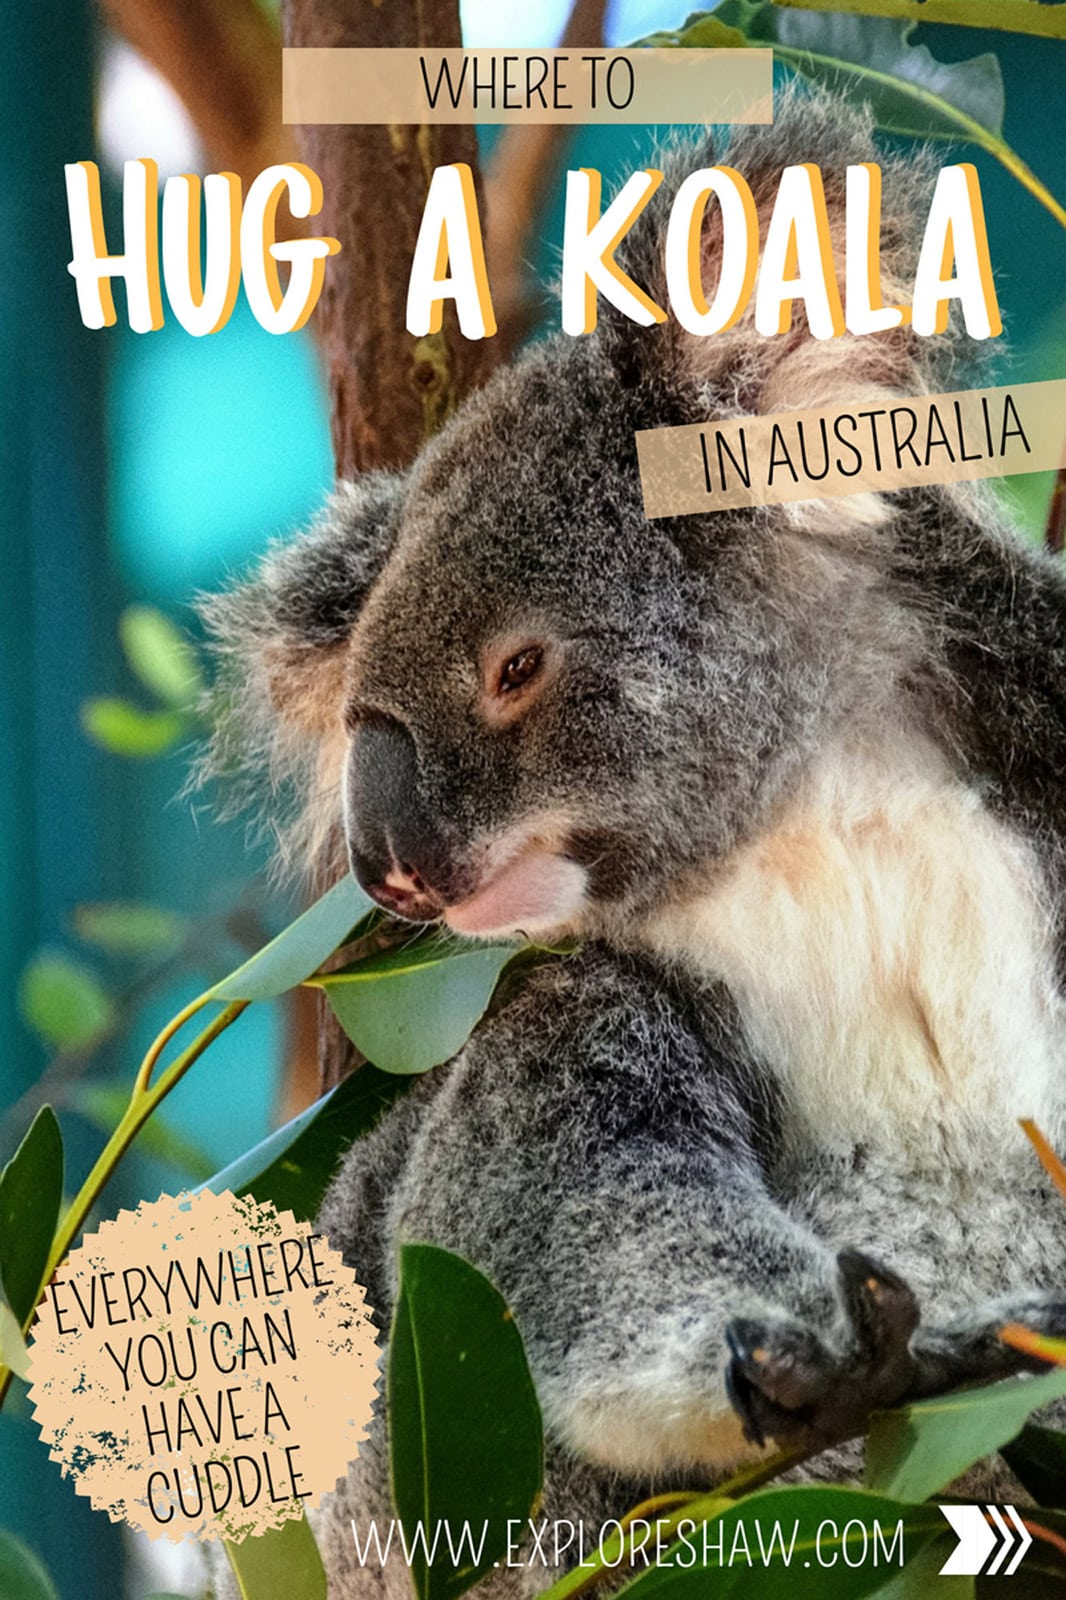 WHERE TO HUG KOALAS IN AUSTRALIA